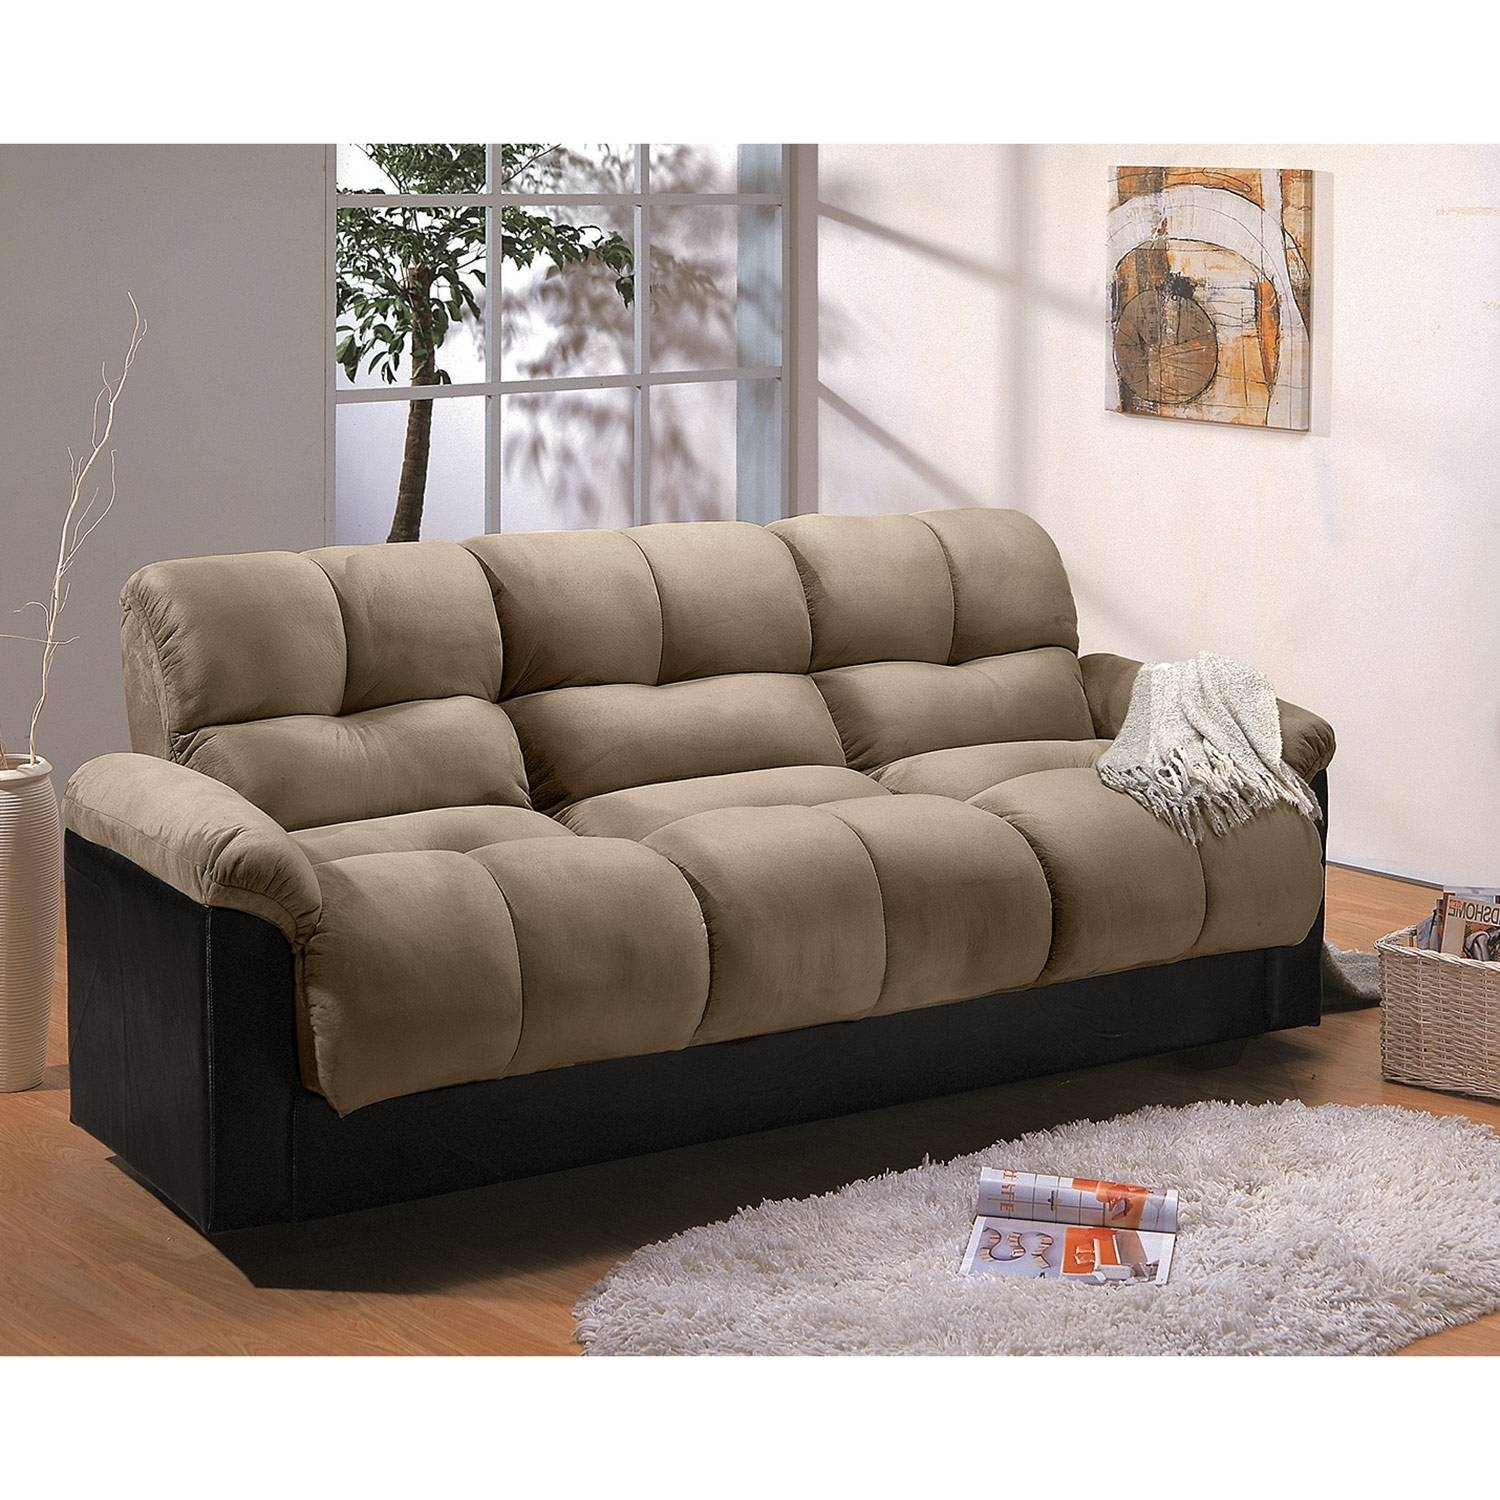 Furniture: Fill Your Living Room With Discount Sofas For Comfy intended for Inexpensive Sectional Sofas For Small Spaces (Image 13 of 30)